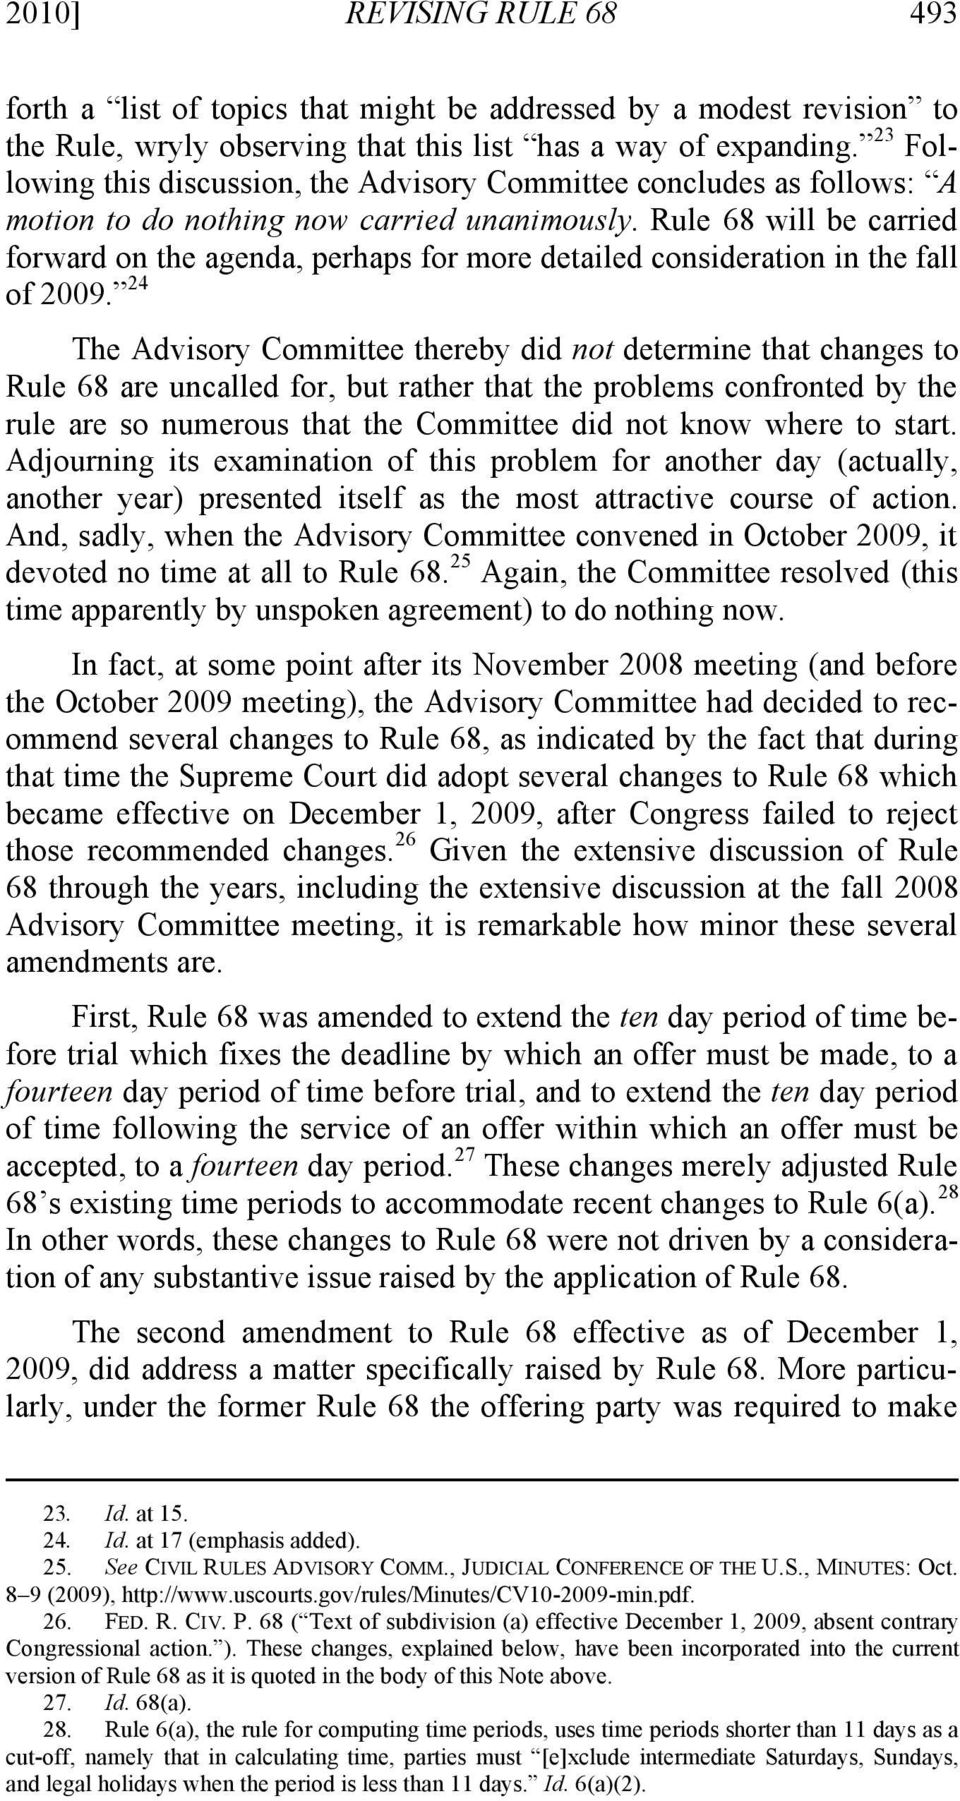 Rule 68 will be carried forward on the agenda, perhaps for more detailed consideration in the fall of 2009.